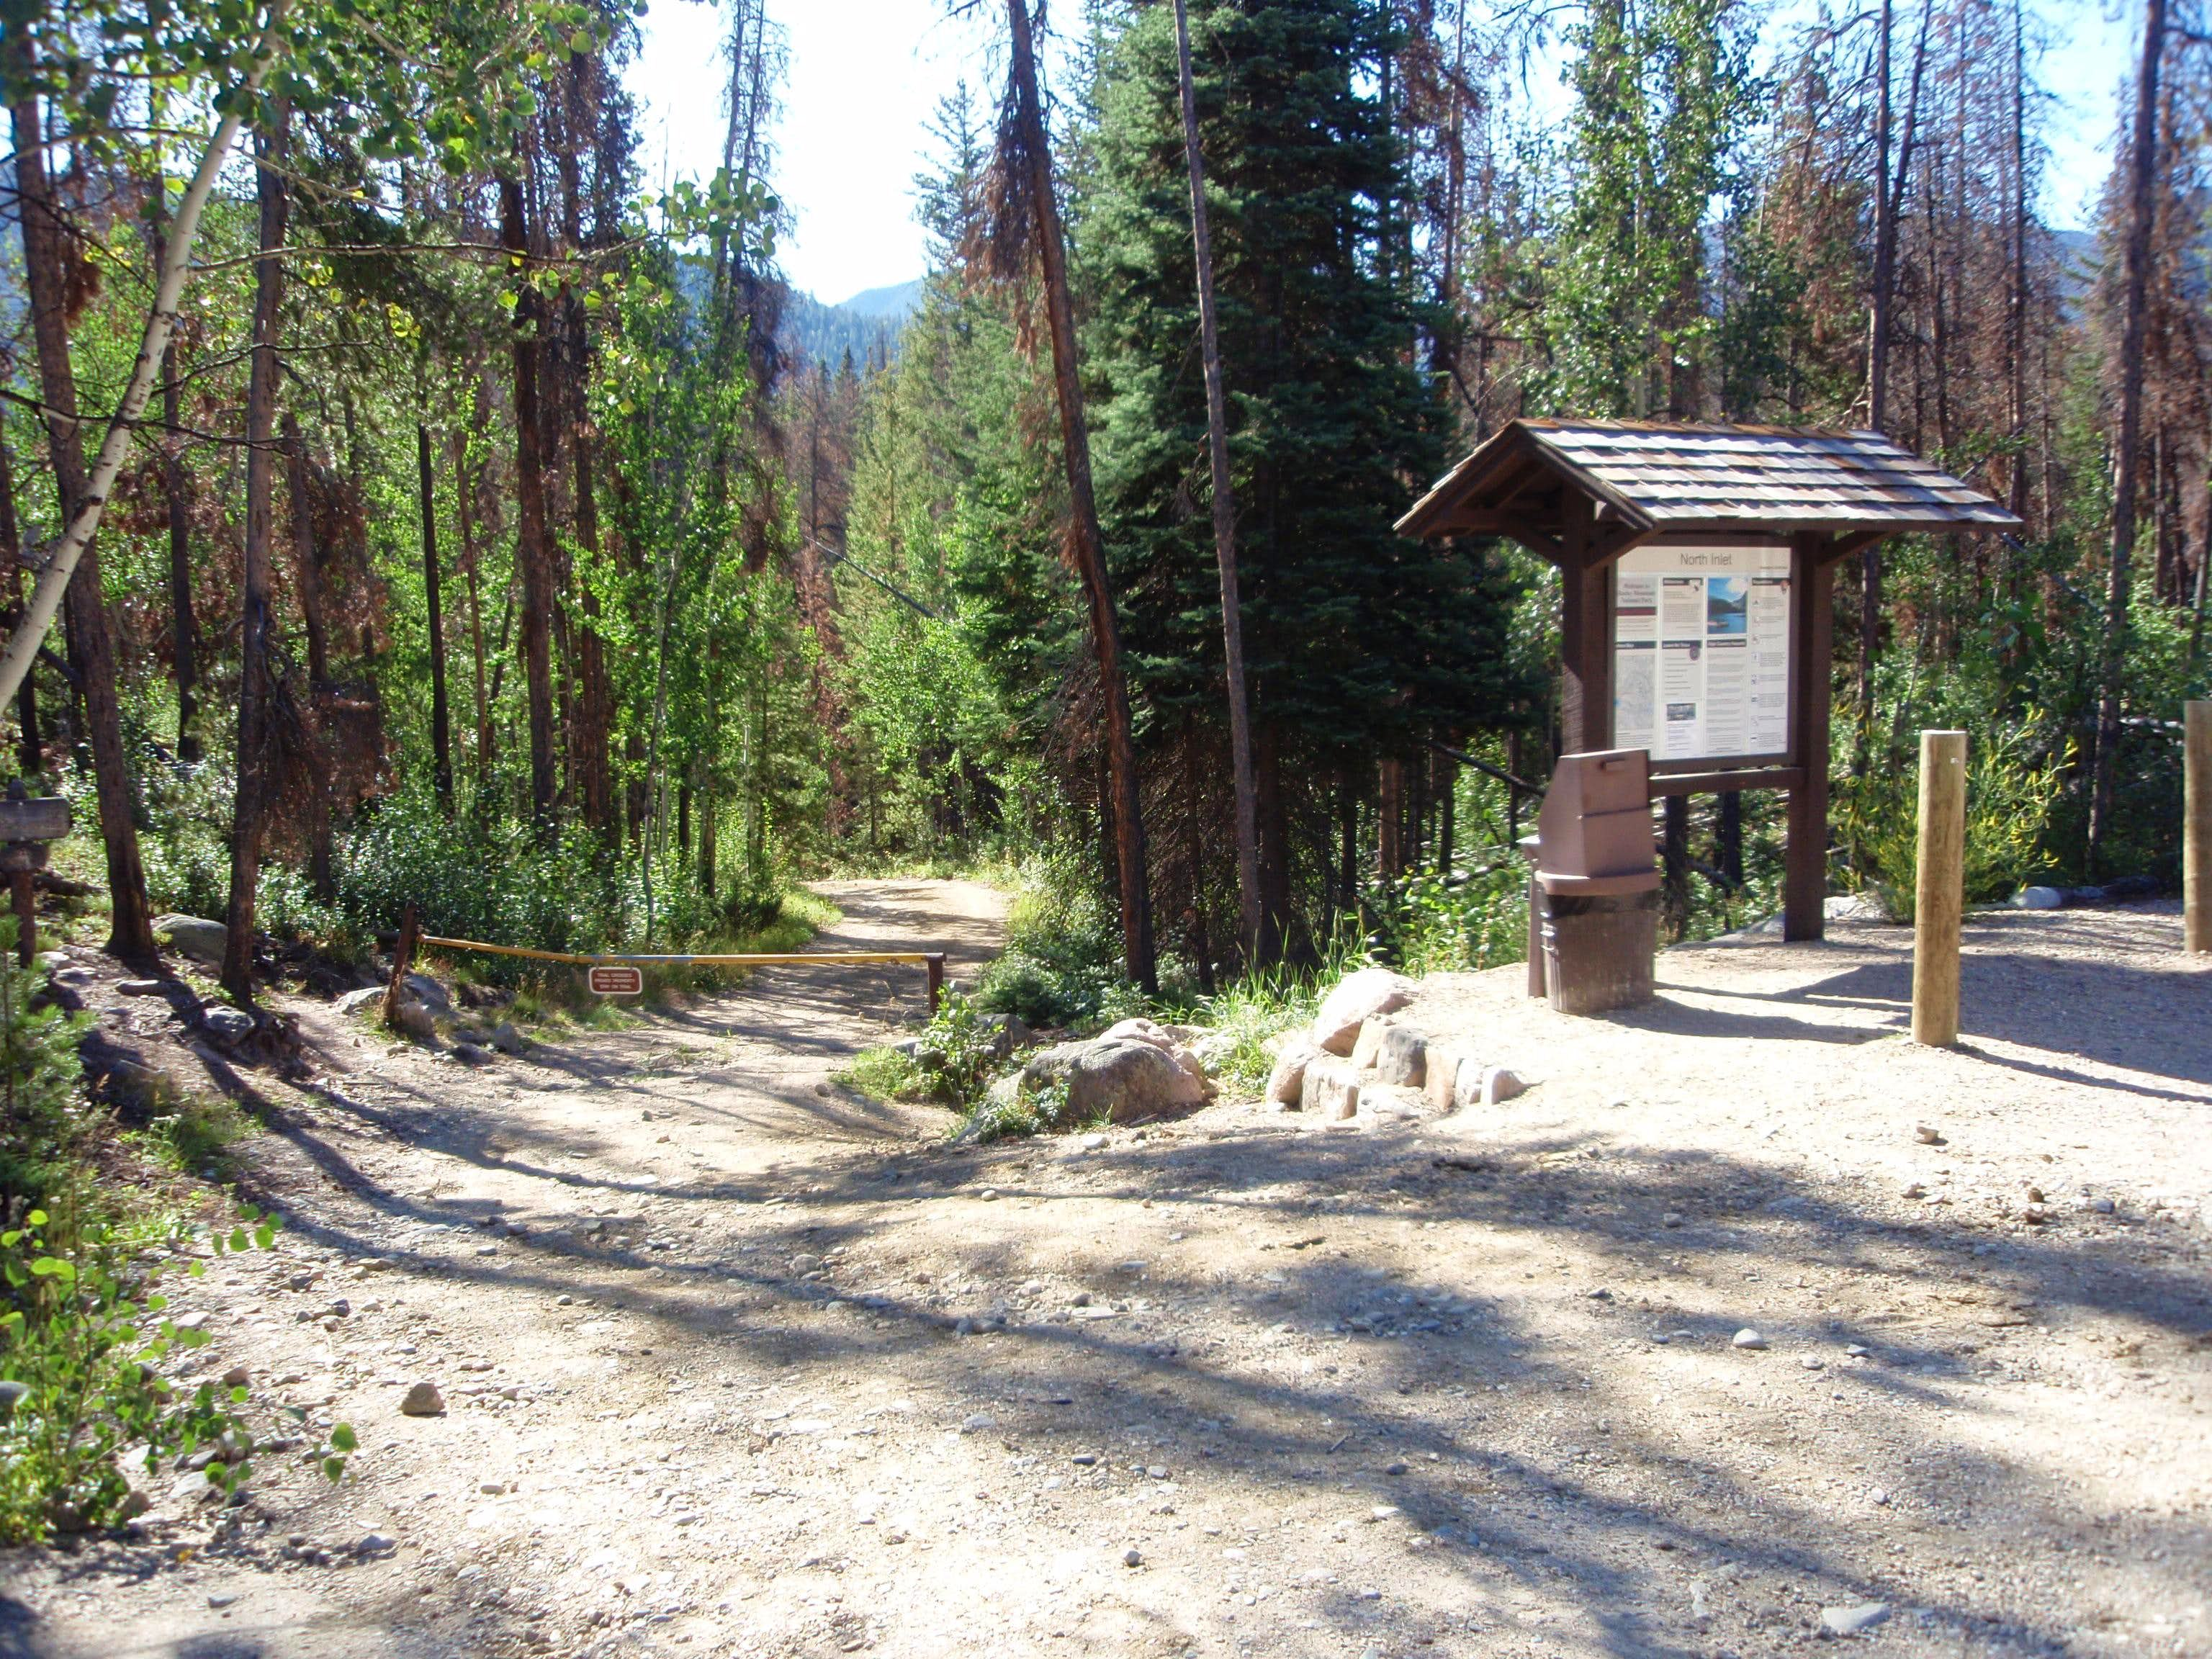 North Inlet Trailhead